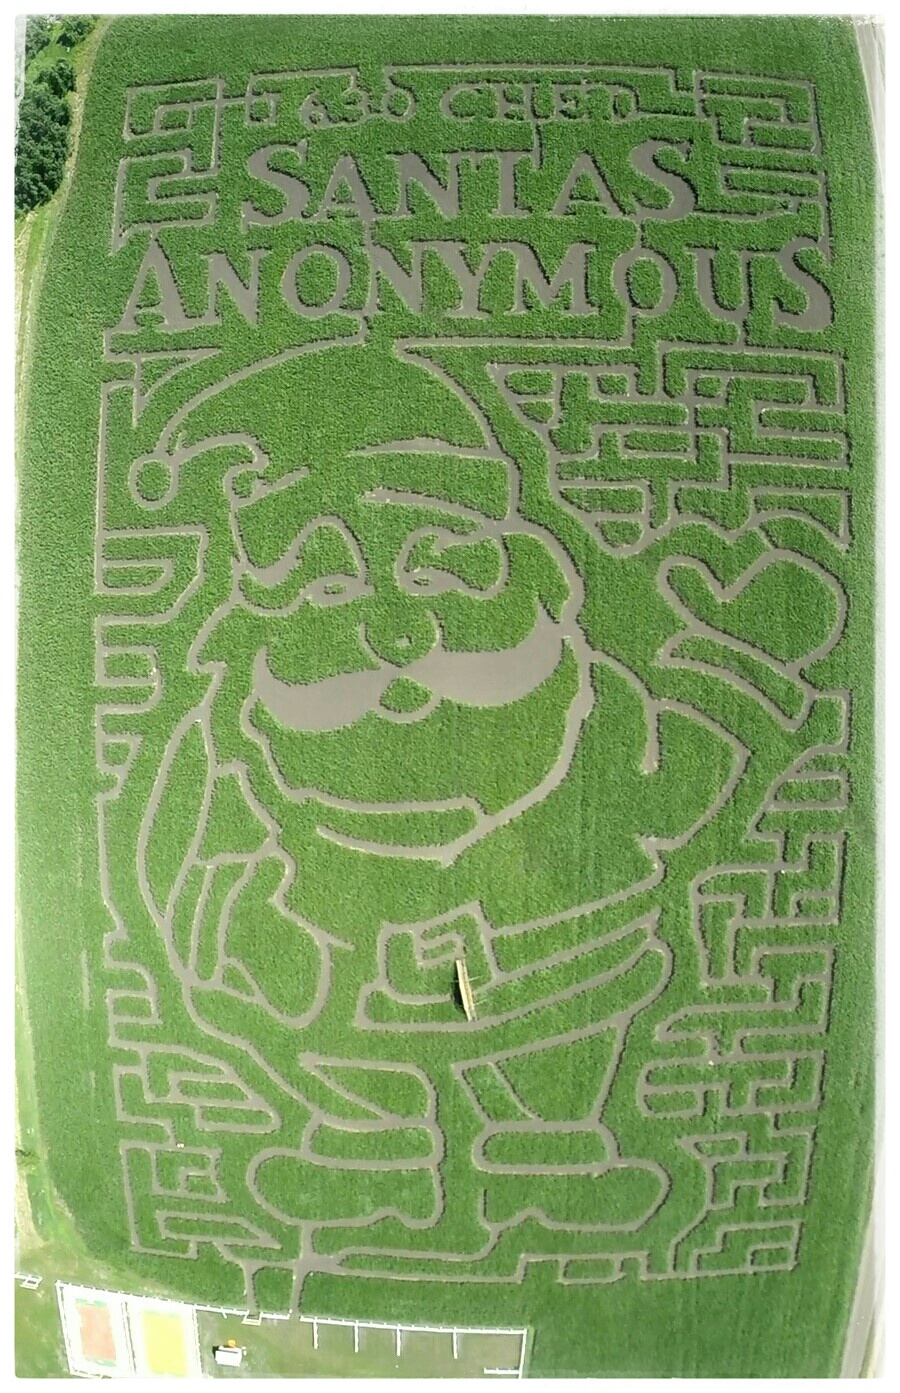 You might want to memorize this. This year's Edmonton Corn Maze!